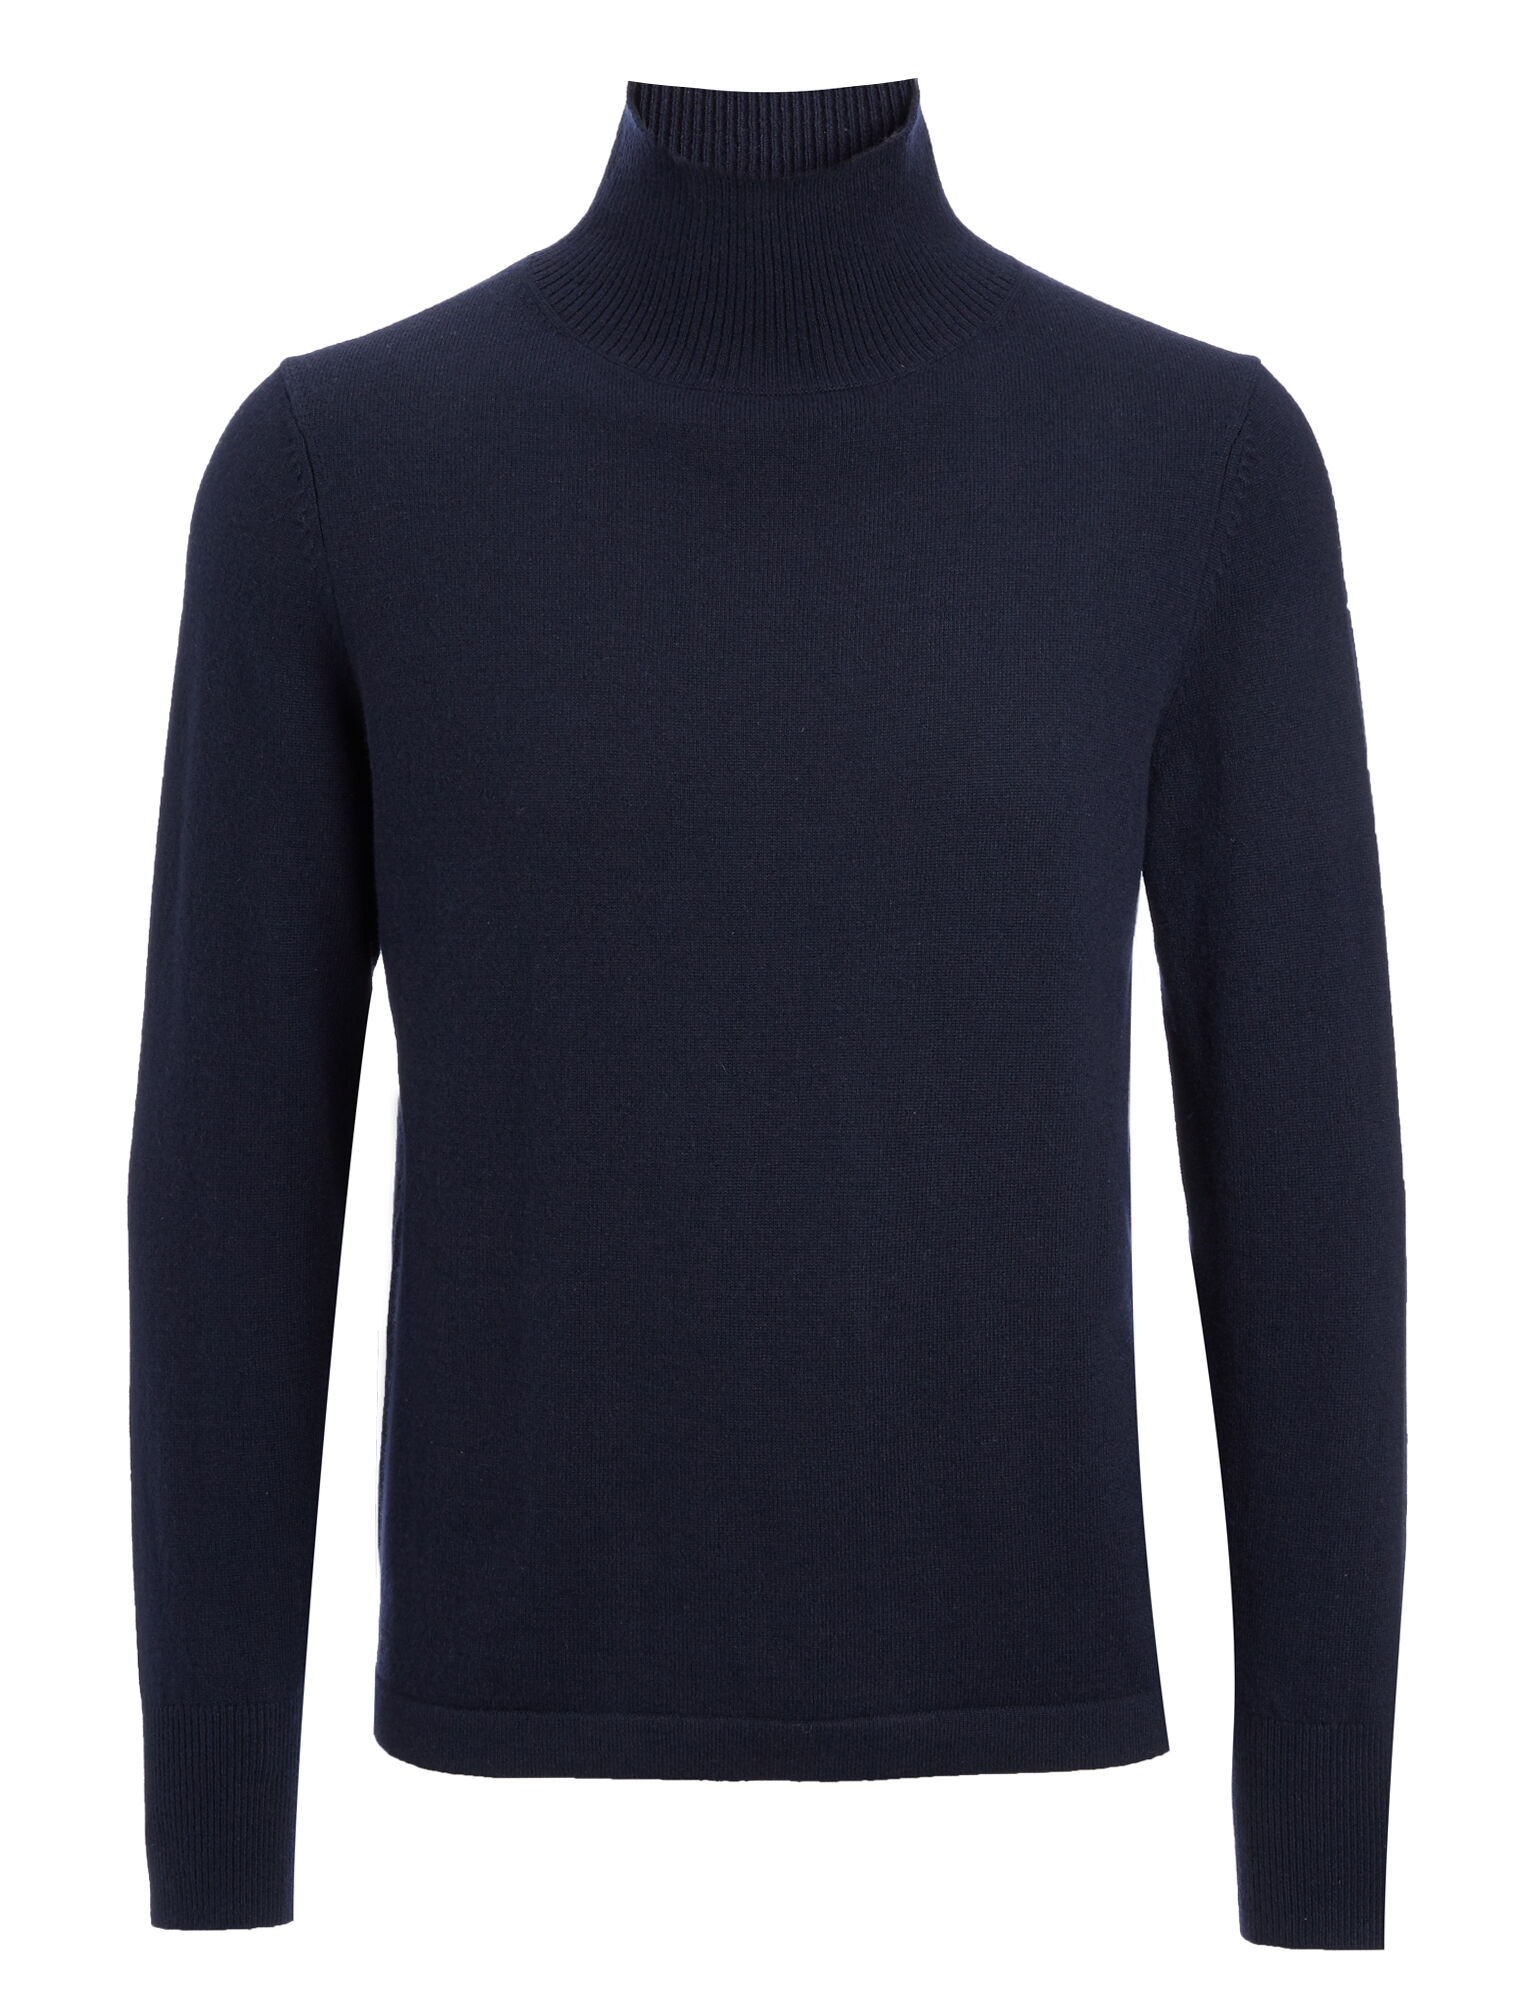 Joseph, Mongolian Cashmere Roll Neck Sweater, in NAVY